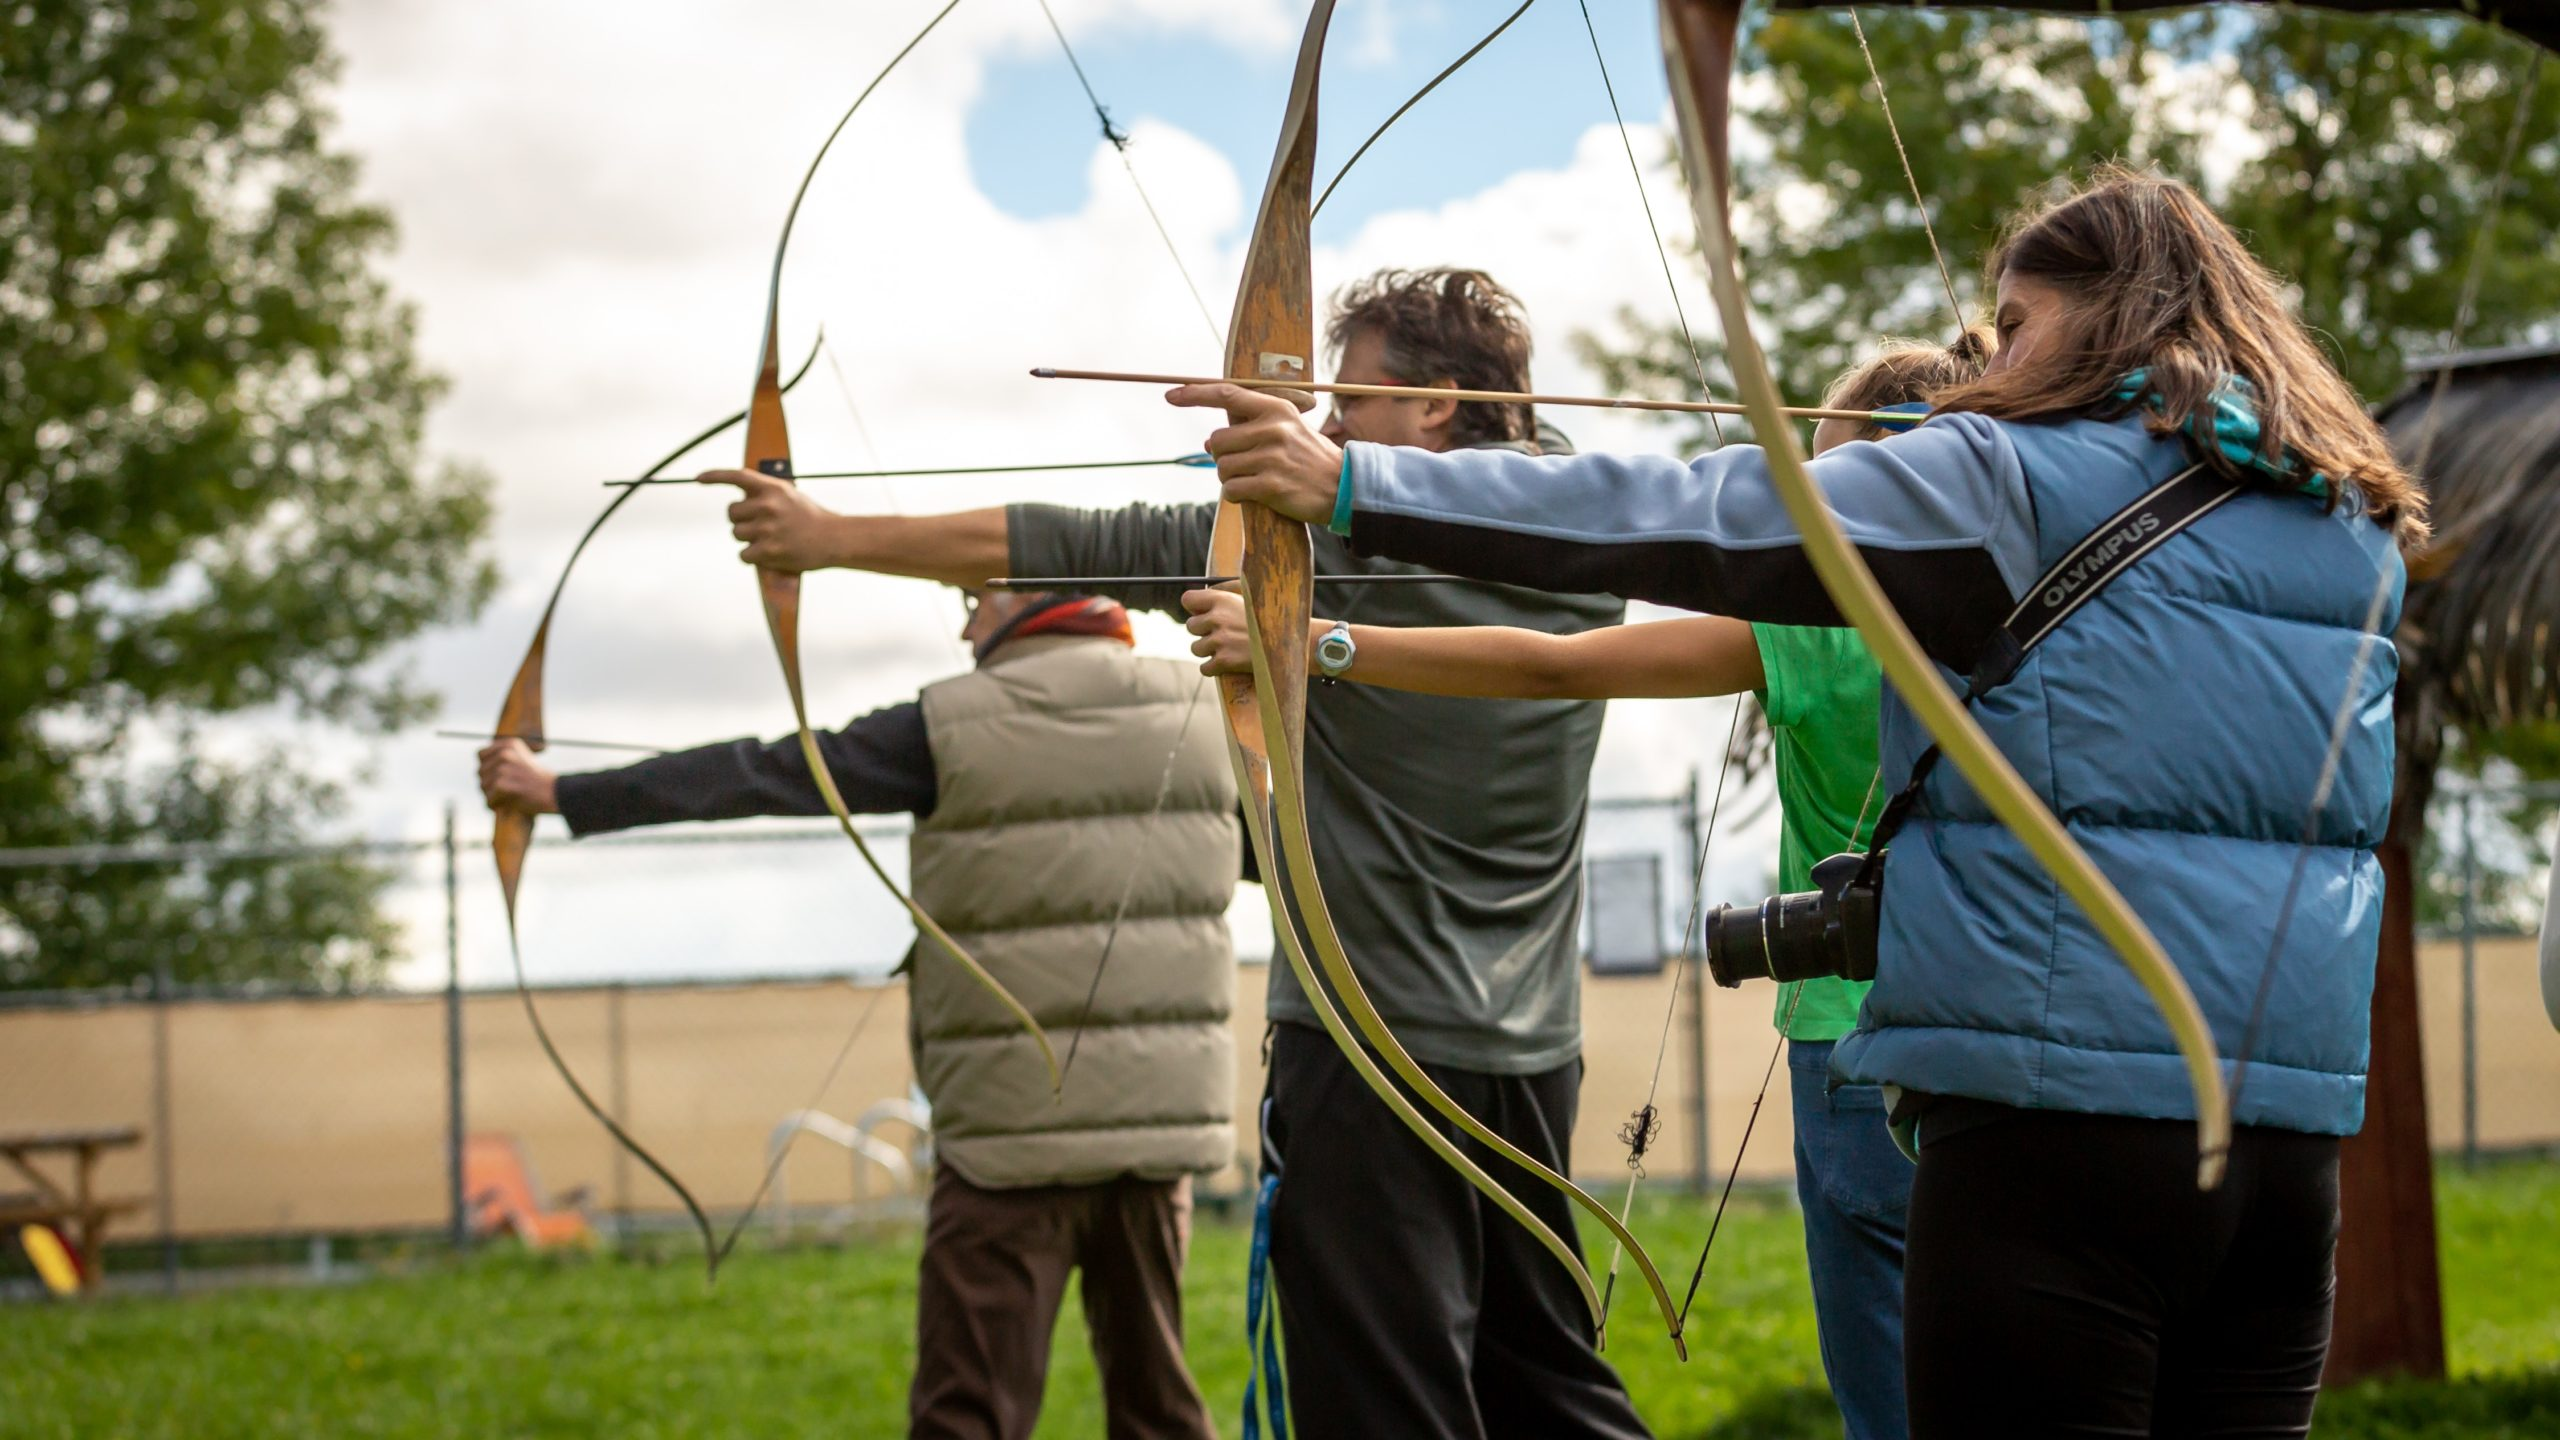 Three people practicing archery at an outdoor archery range.